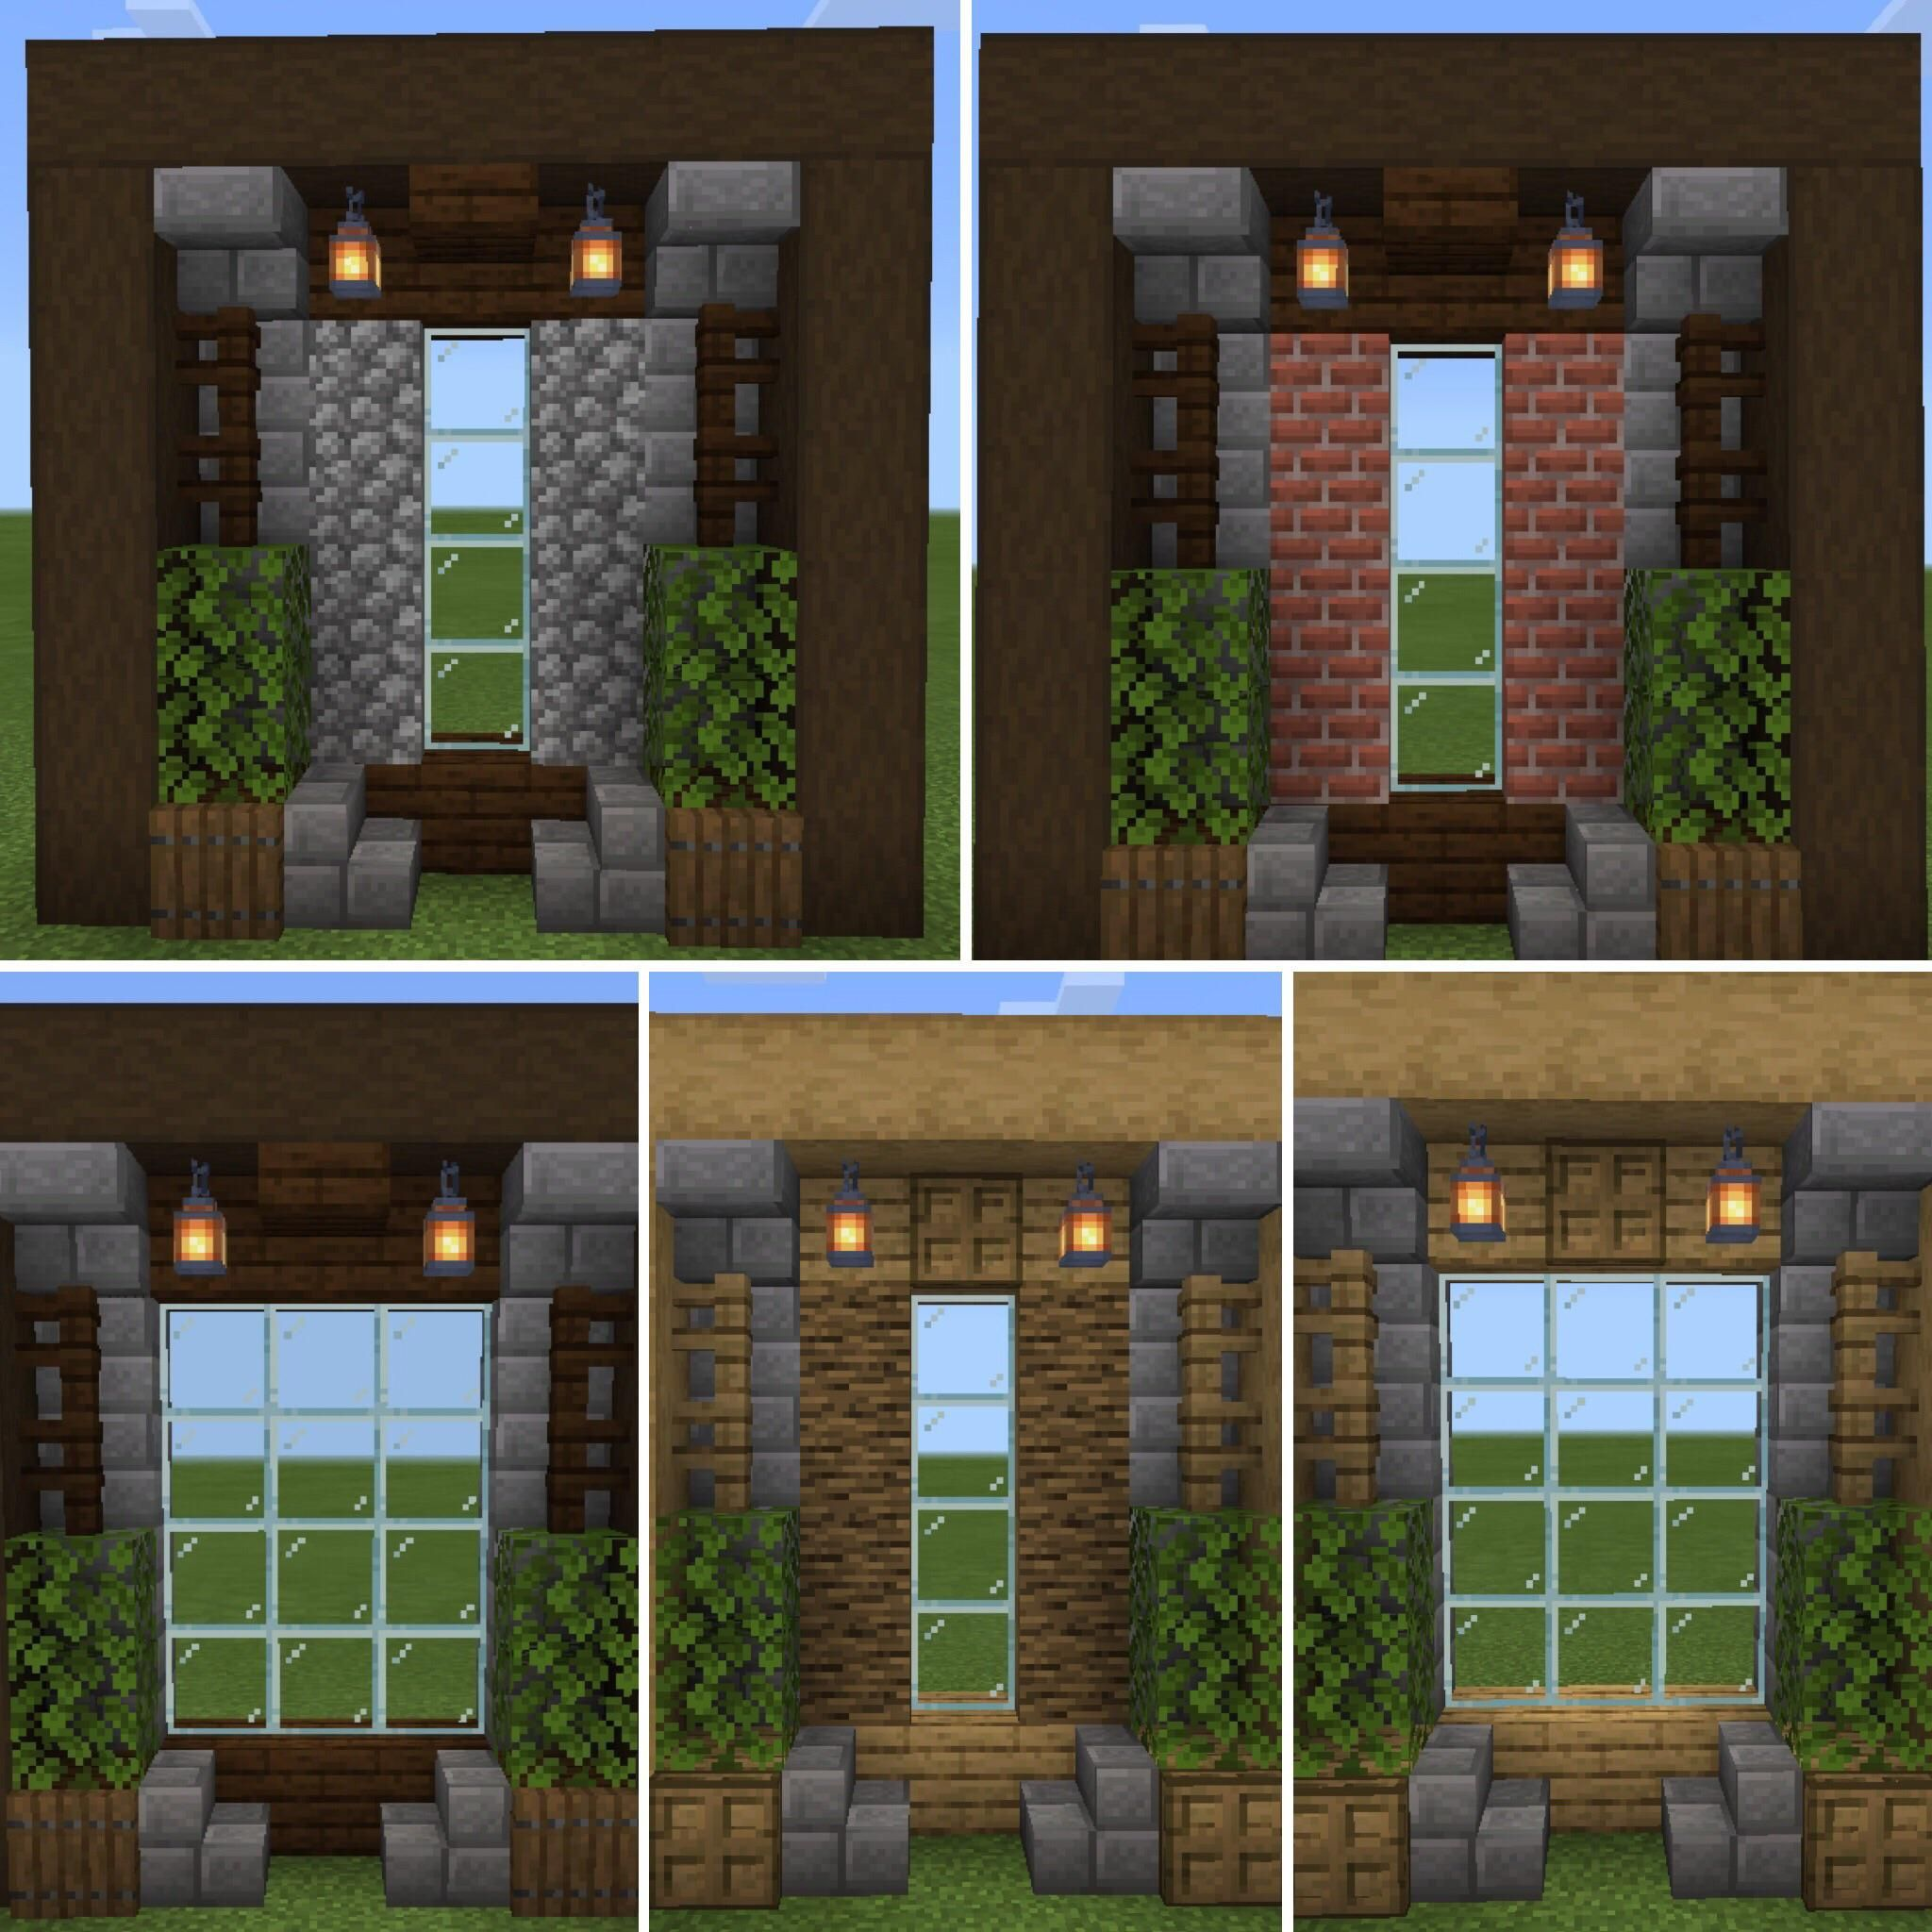 Made Some Windows For Oak And Dark Oak Style. Hope It